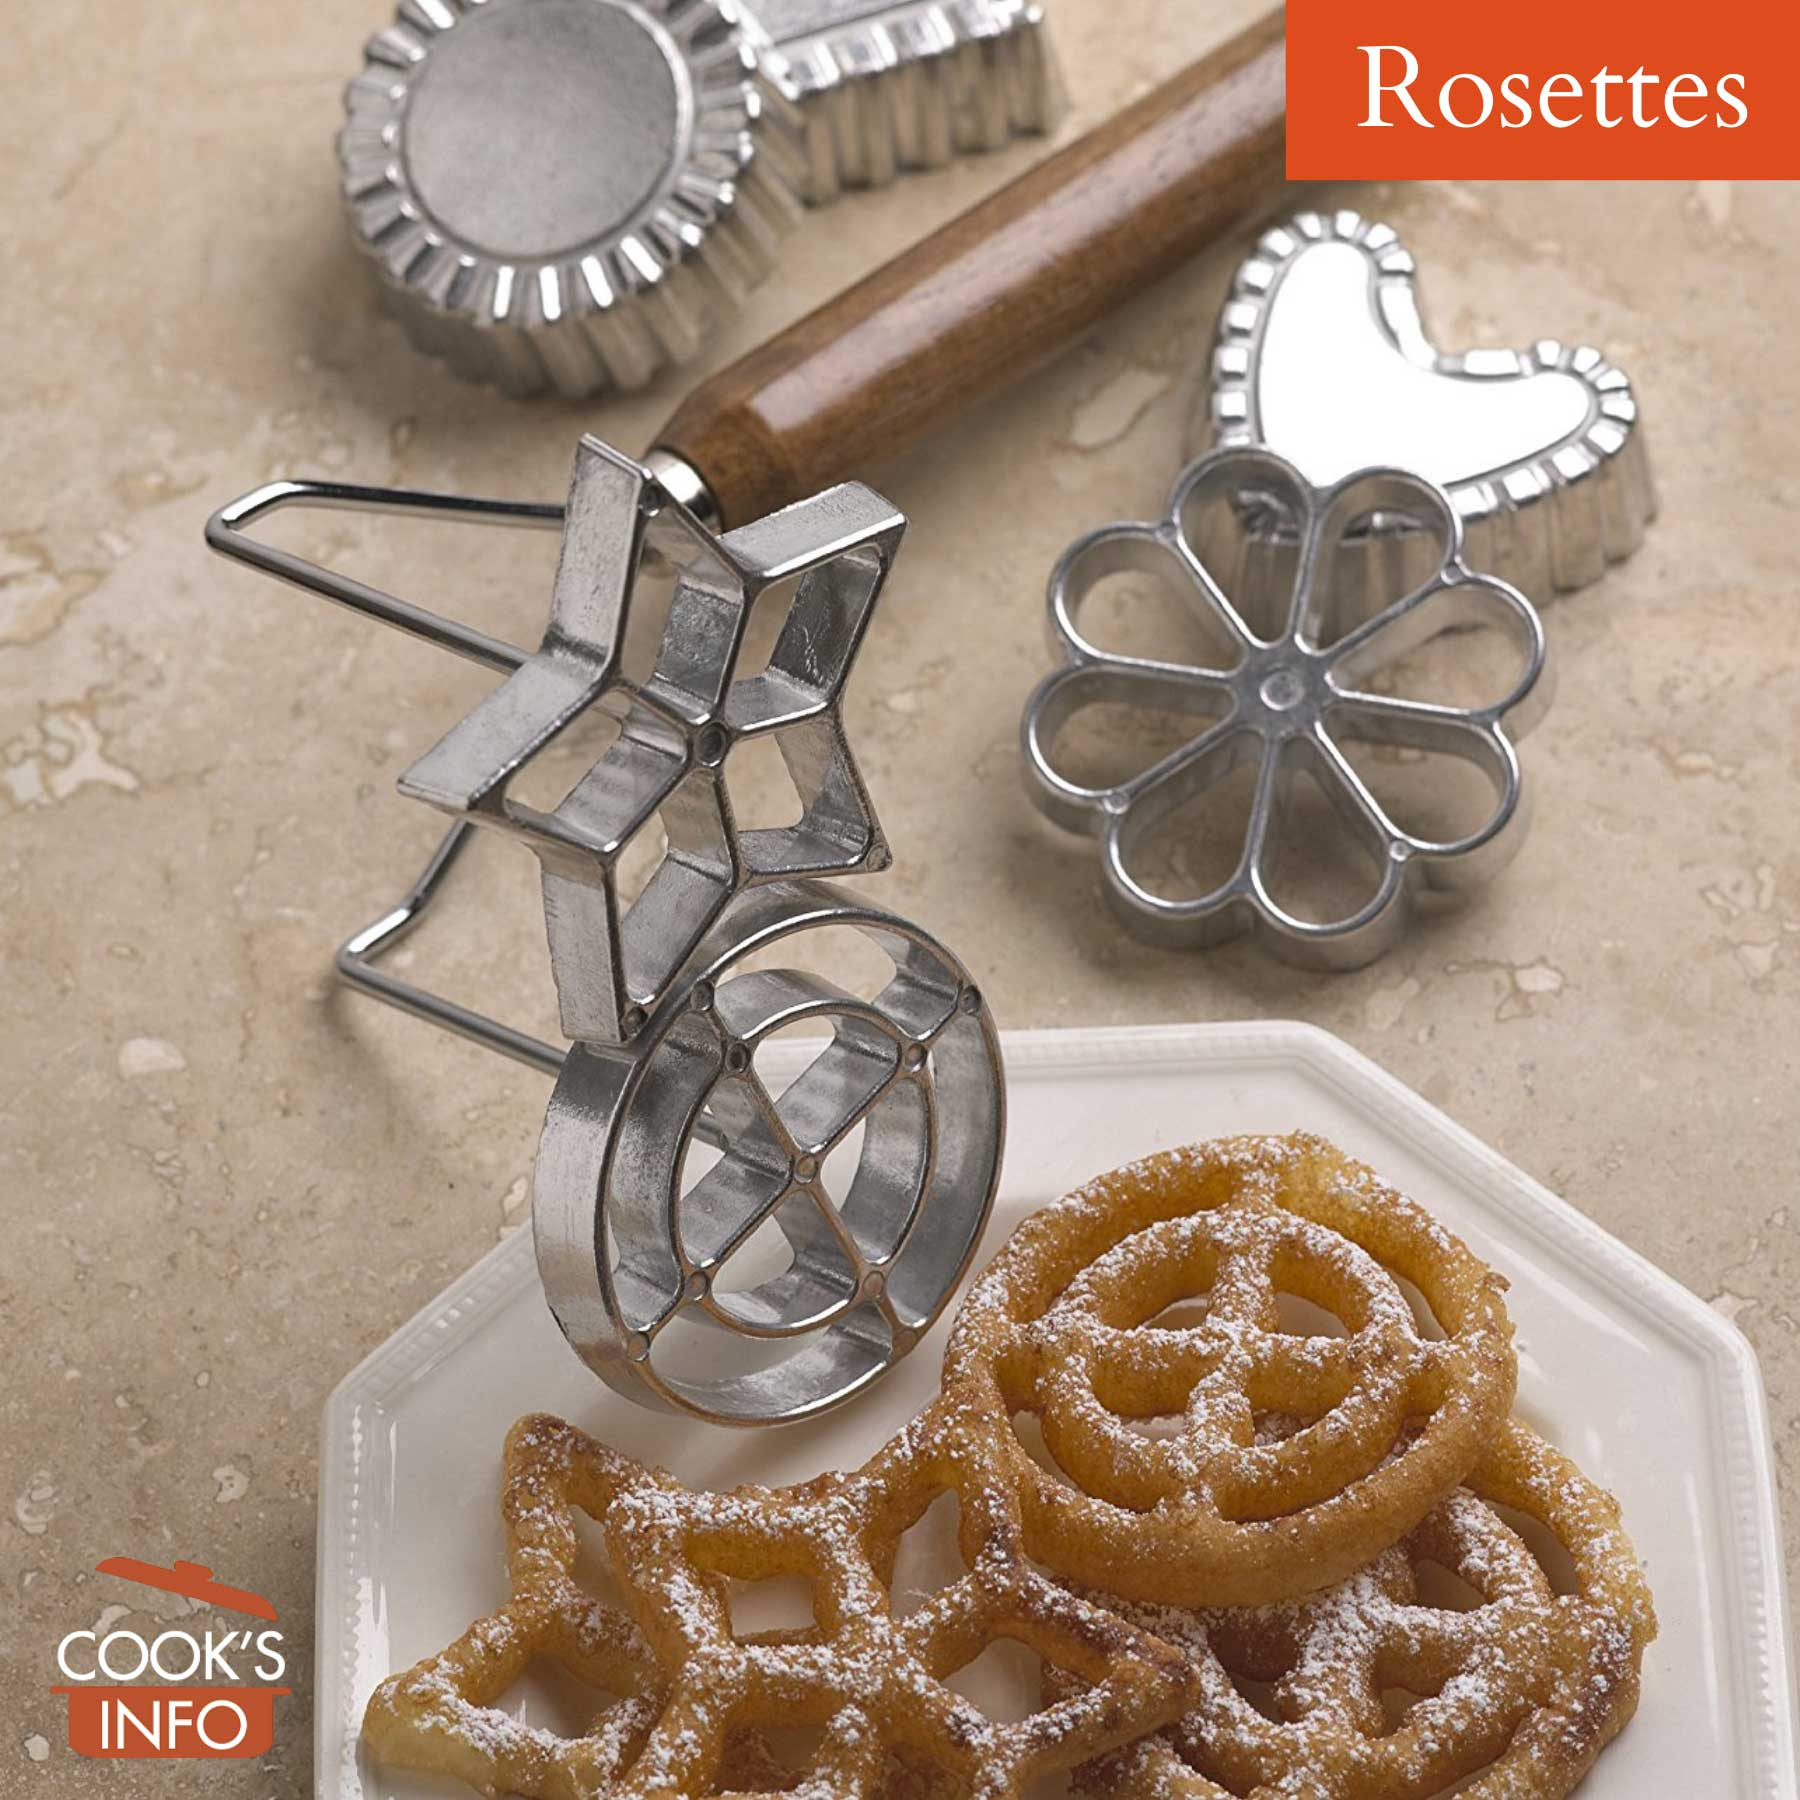 Rosettes with rosette iron